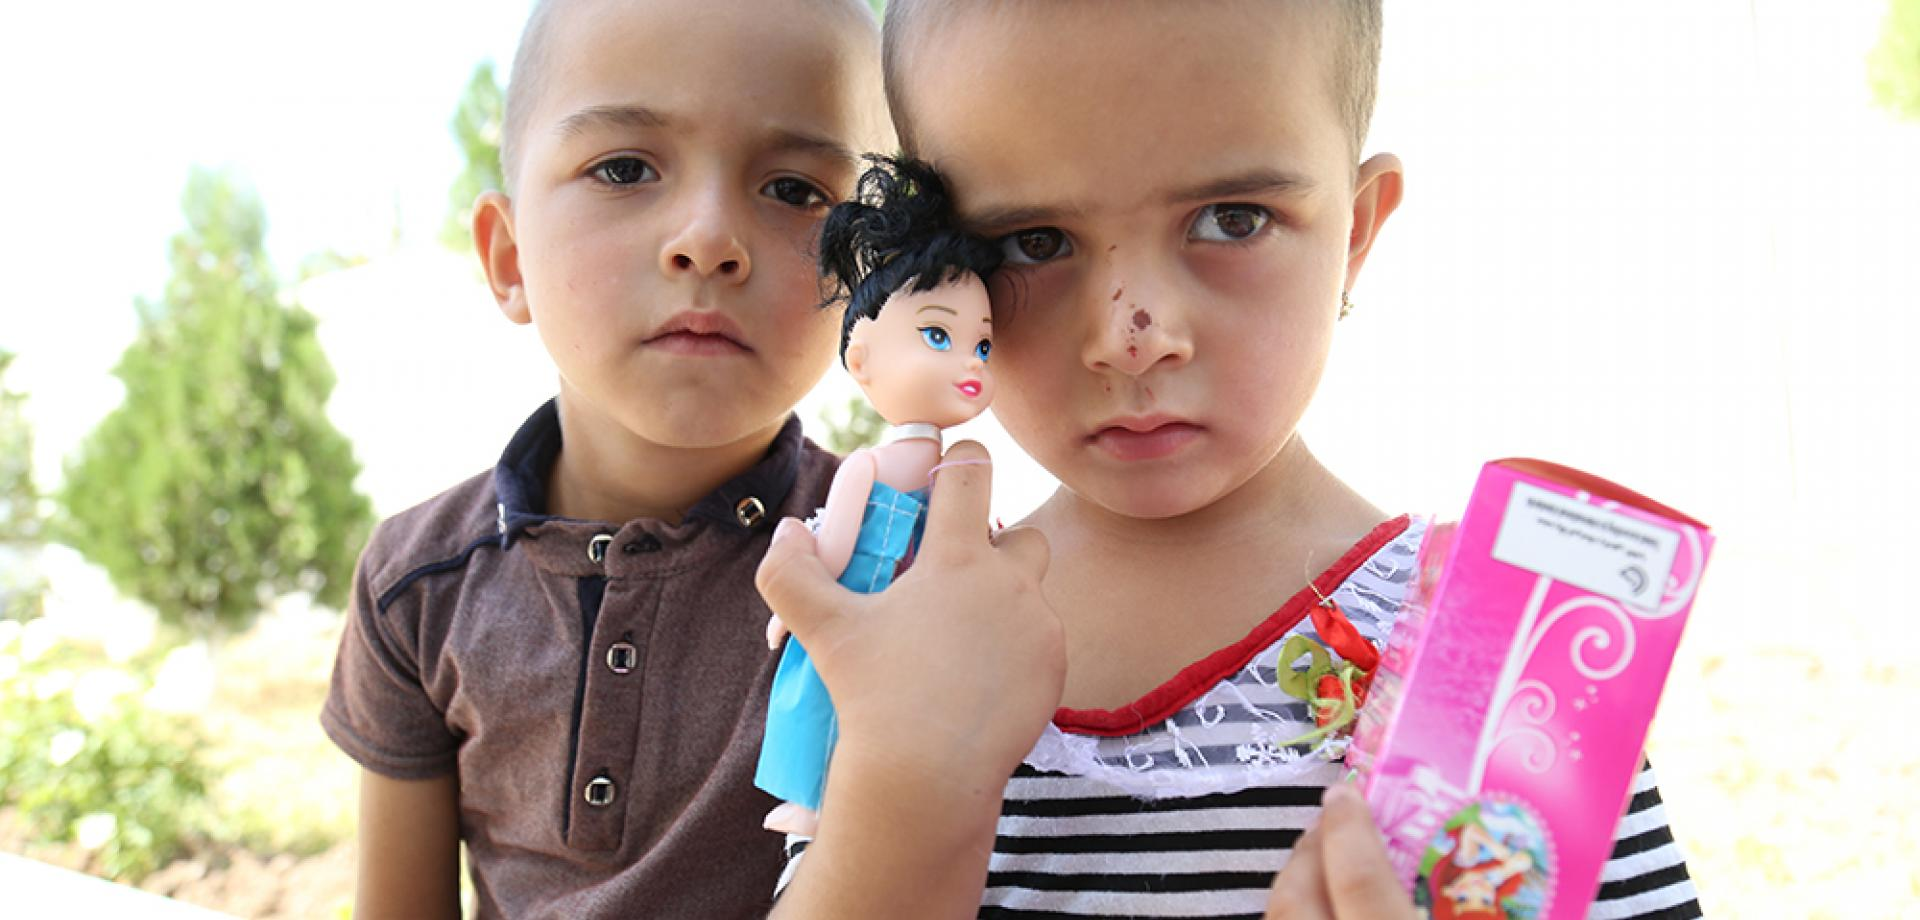 These two children have been treated for tuberculosis at the MSF-supported hospital in Machiton, Tajikistan